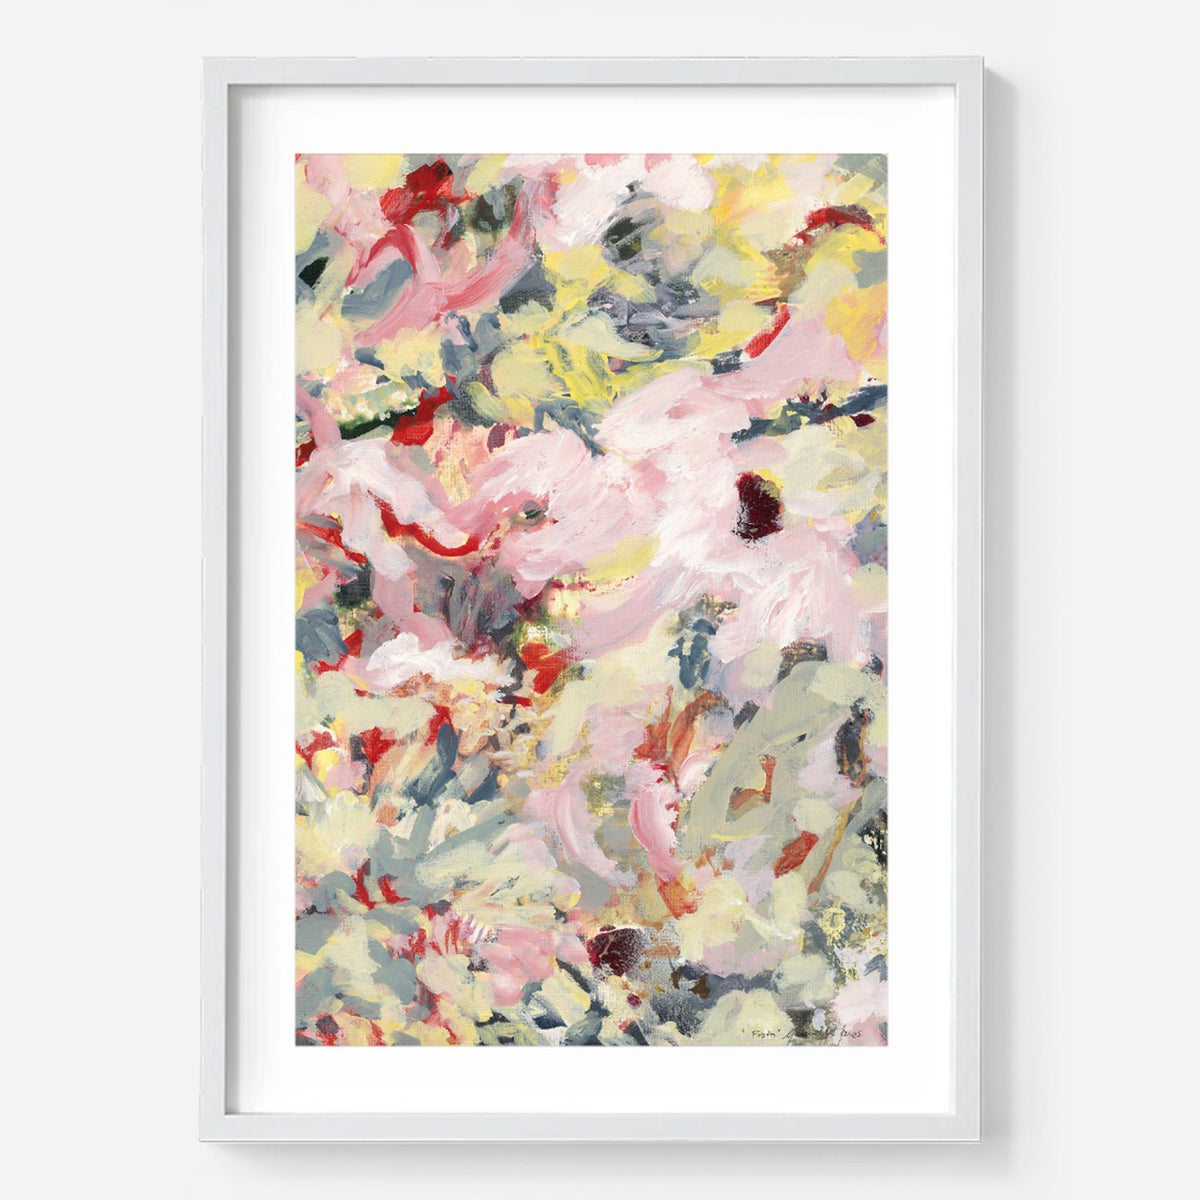 Froth - by Gabrielle Jones for ArtPrintz